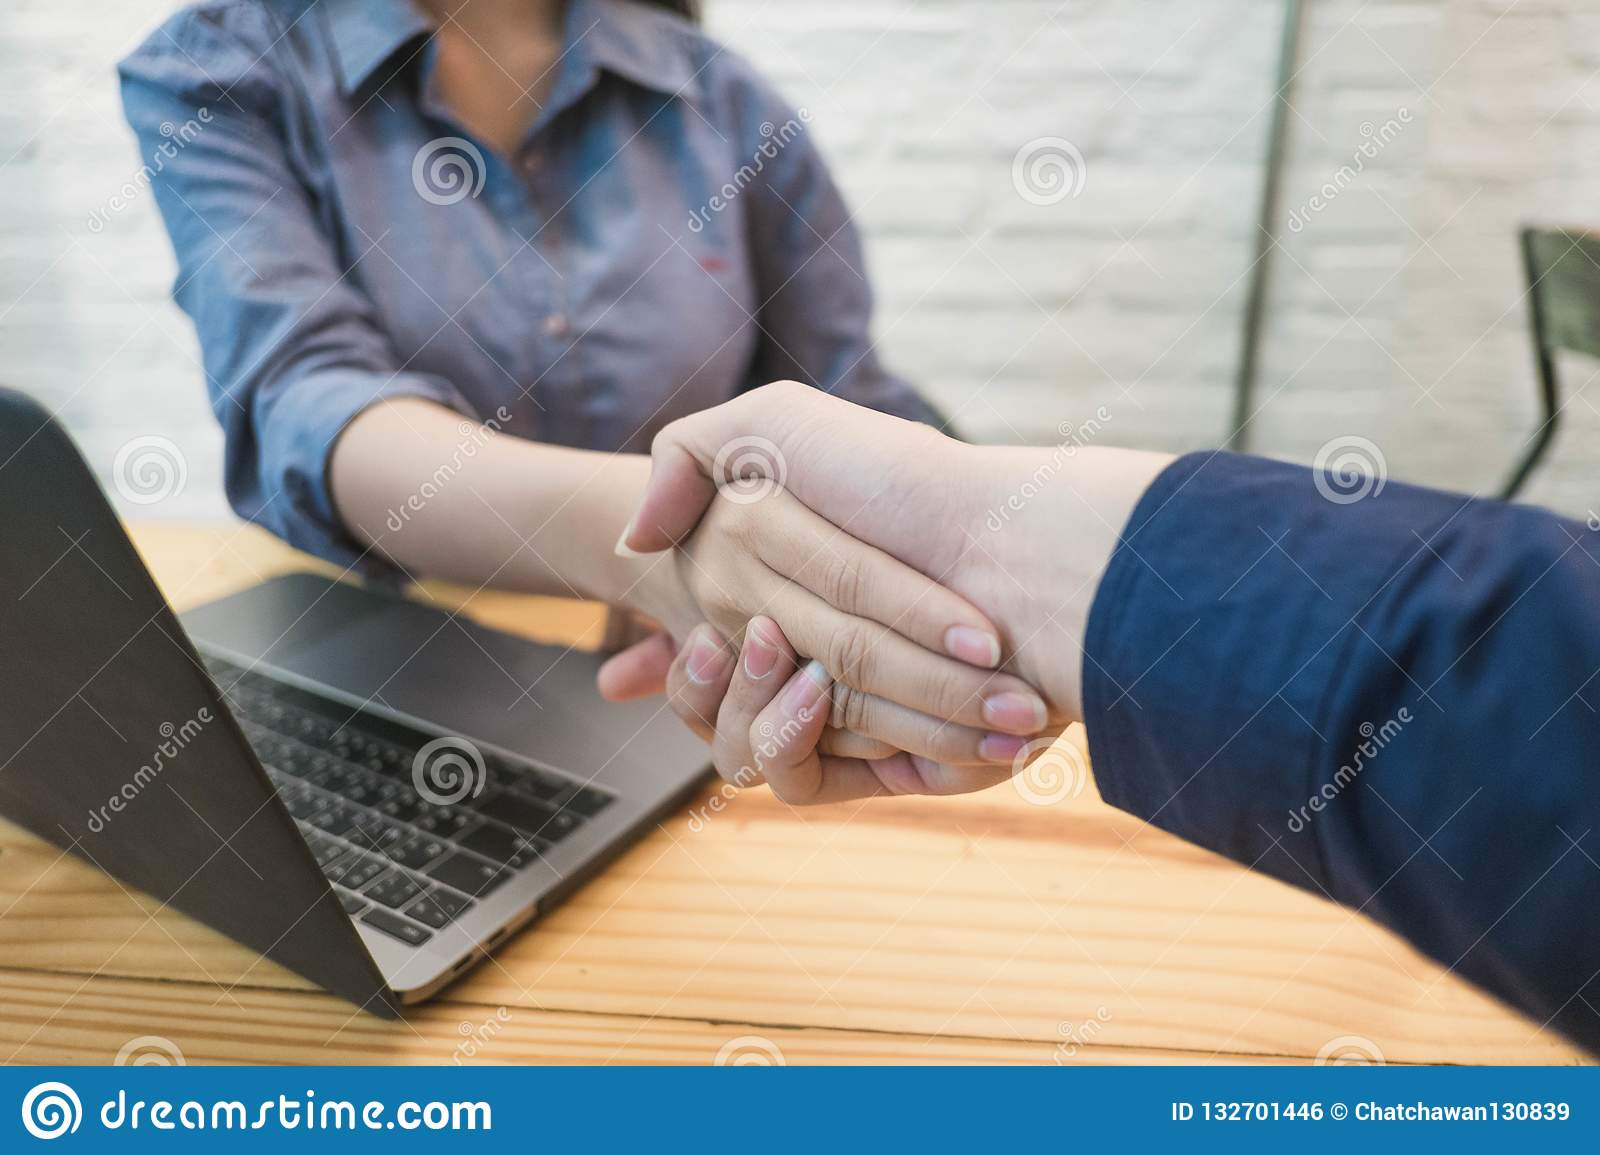 Business people handshakeing in the office. Business partner Con